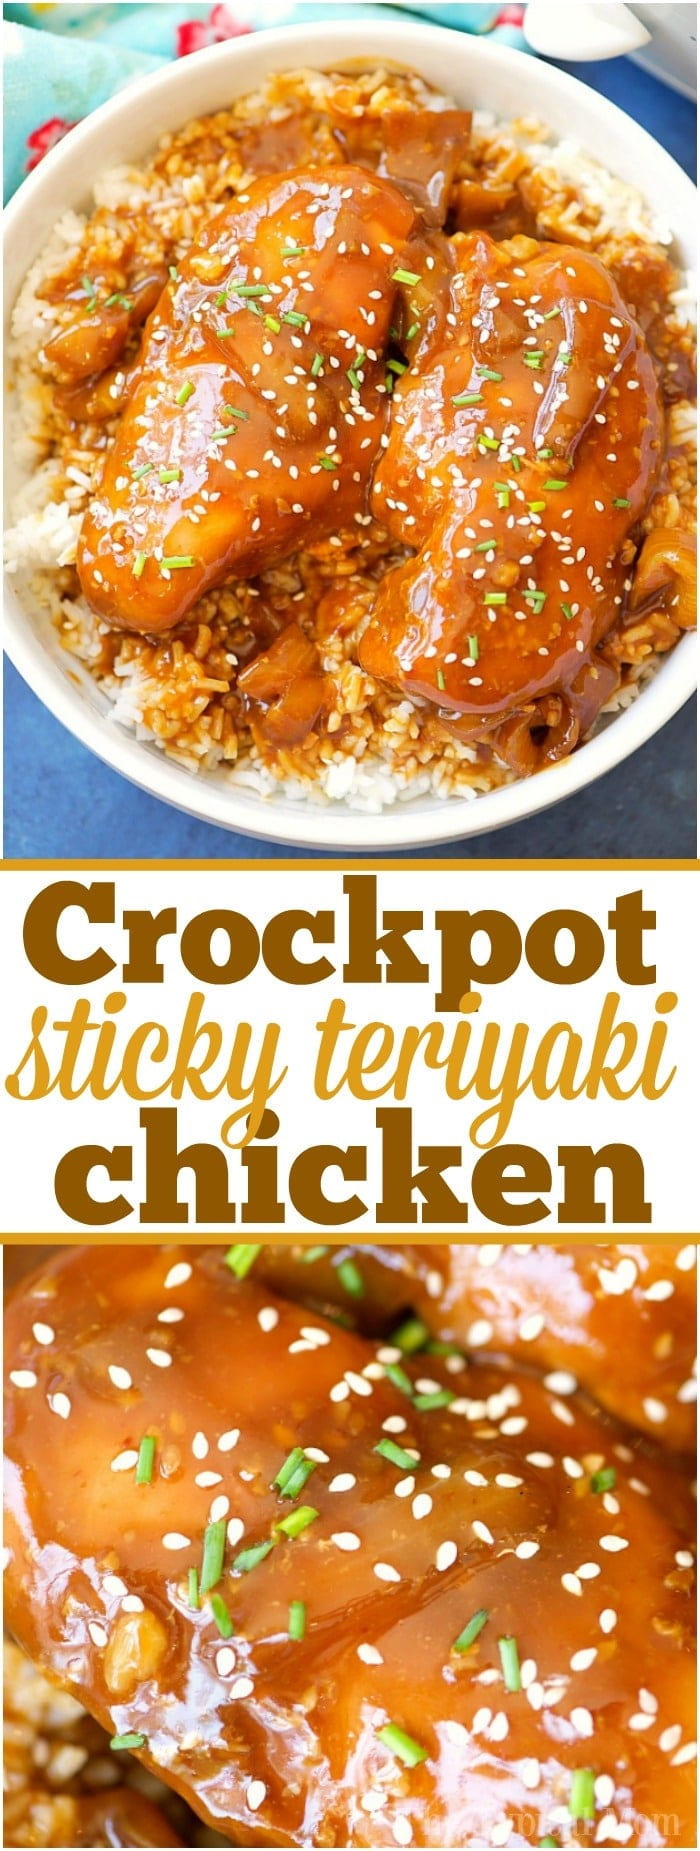 This easy crockpot sticky teriyaki chicken with a kick of heat recipe is amazing and a healthy meal too! Sweet with just a pinch of Sriracha makes it great! #crockpot #slowcooker #chicken #teriyaki #sweet #healthy #dinner